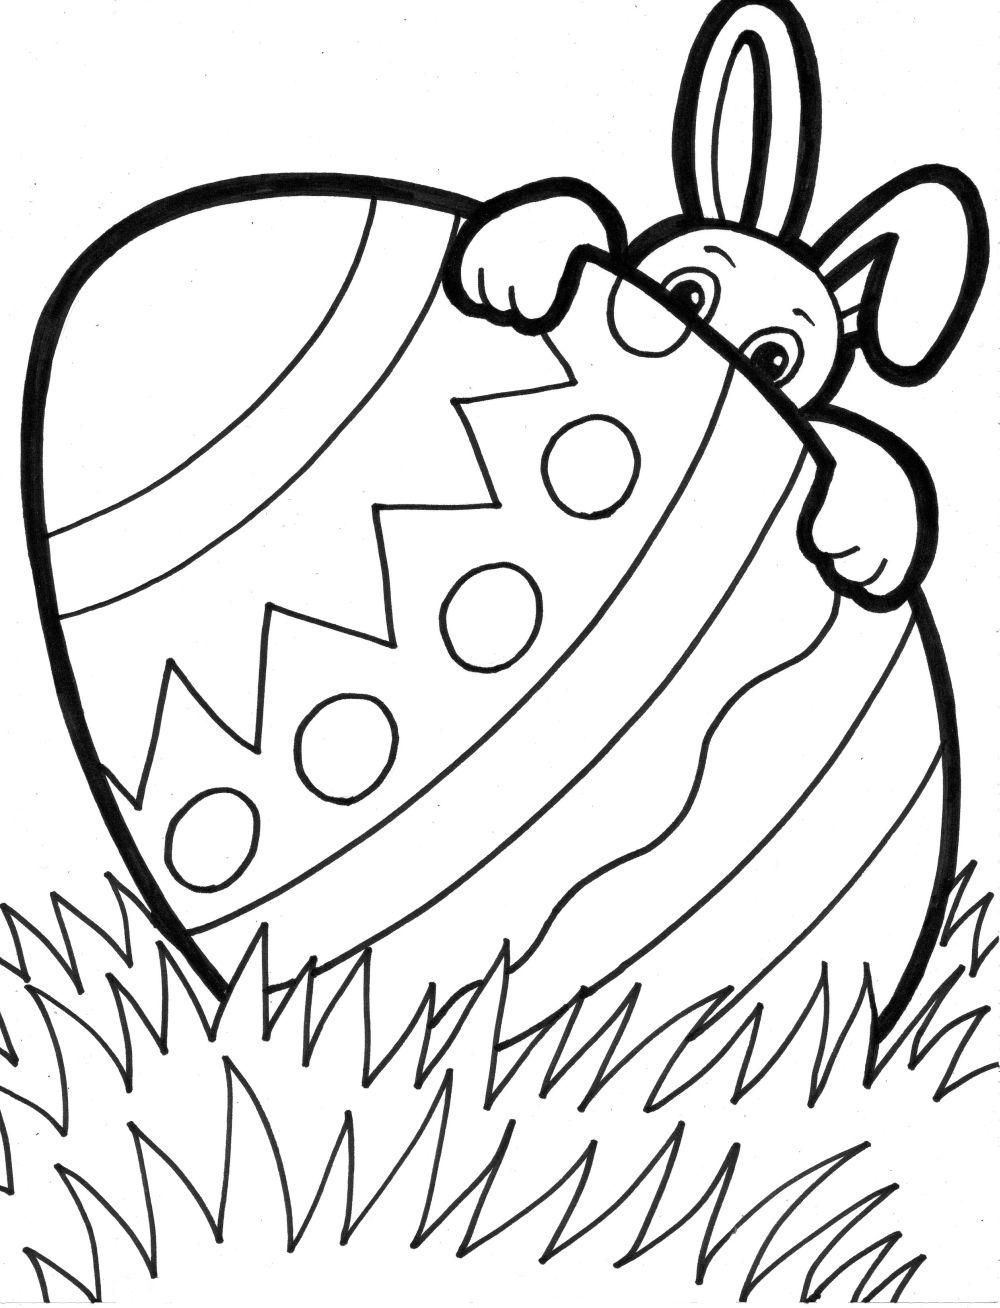 Free Easter Printable Coloring Pages For Kids Games And Wallpaper Easterpictures Easter Coloring Pages Printable Easter Bunny Colouring Bunny Coloring Pages